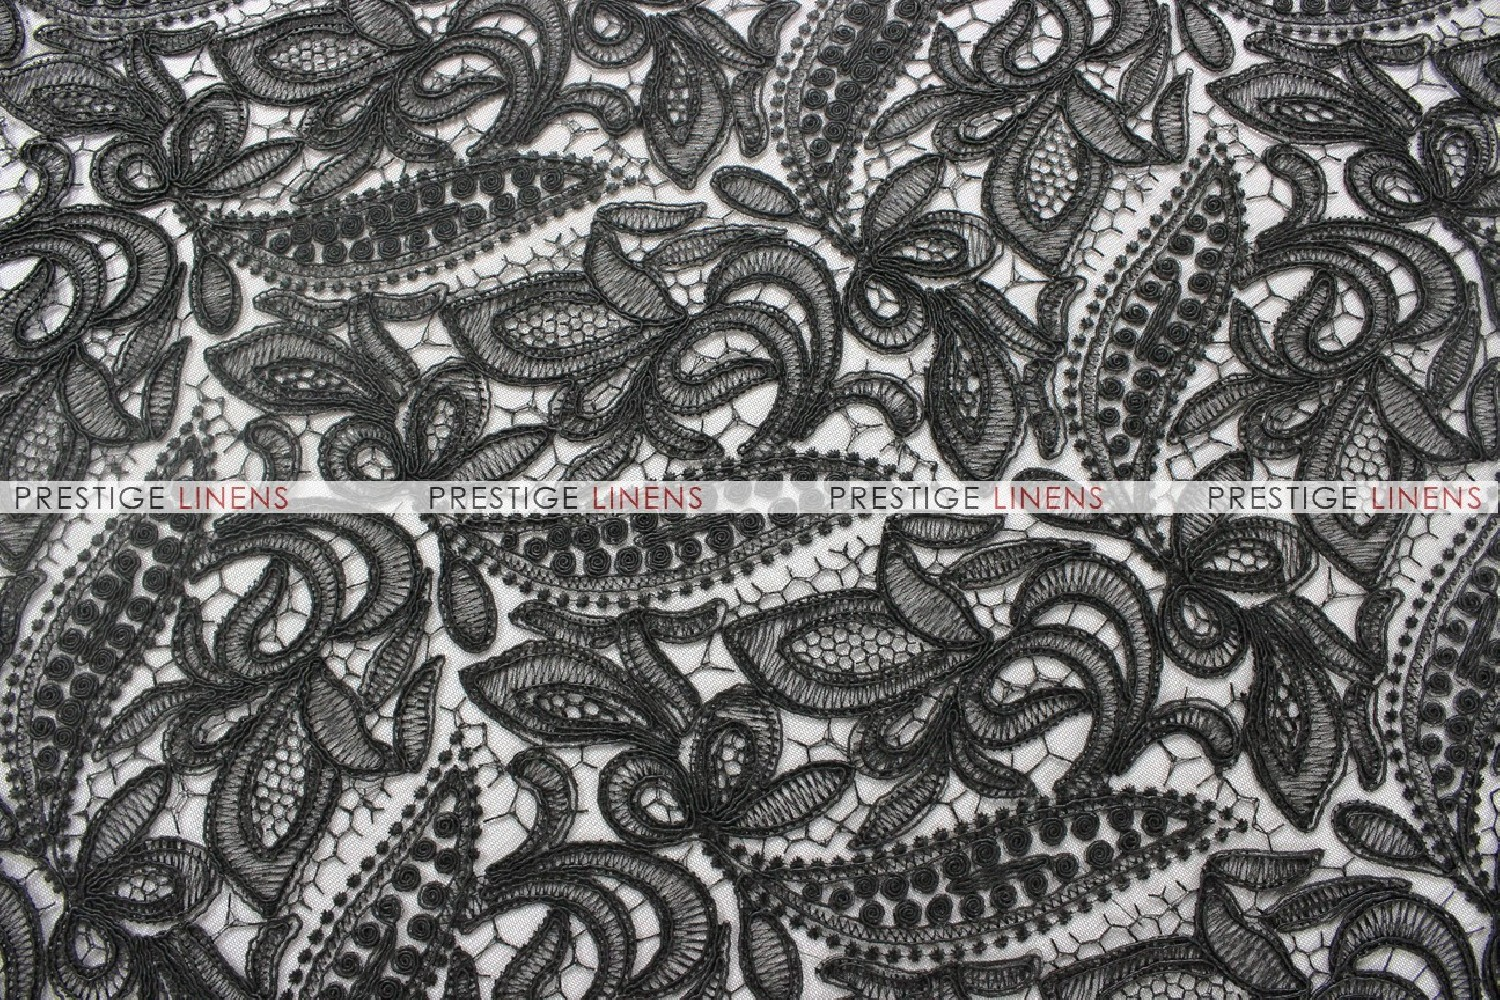 French Lace Fabric By The Yard Black Prestige Linens